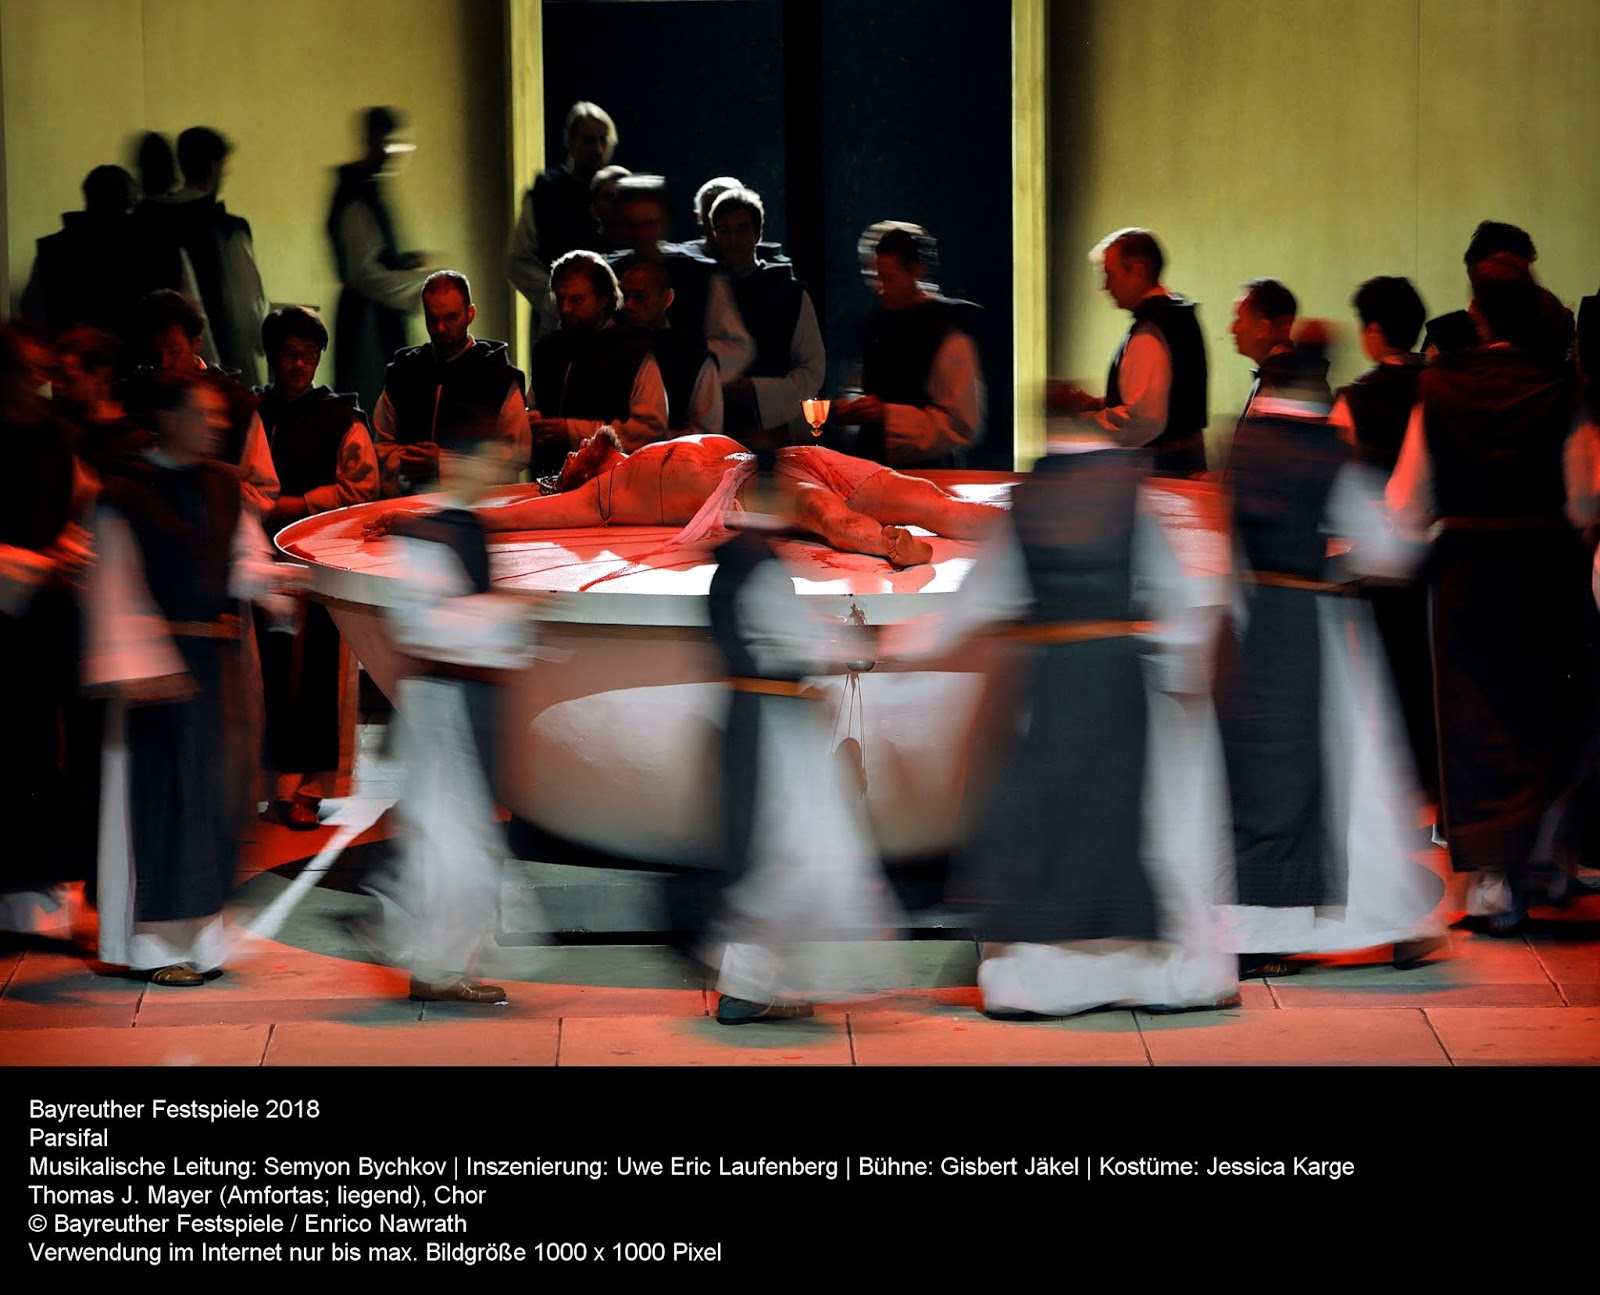 Bayreuth's Parsifal provided a sensitive portrayal of humanity overcoming adversity